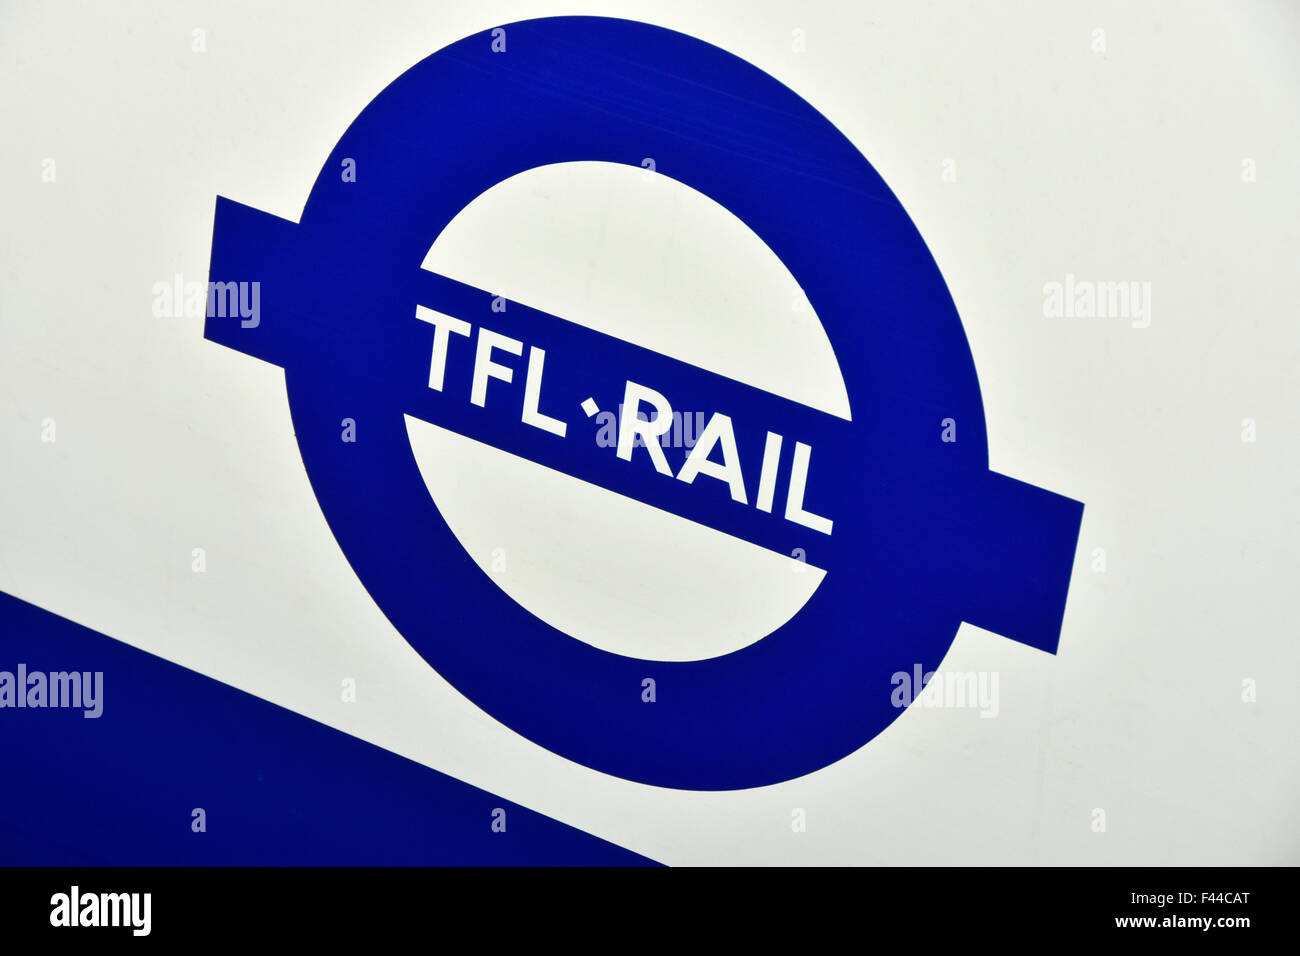 Transport for London sign on metro commuter train carriage taken over by tfl on Shenfield to London Liverpool Street - Stock Image